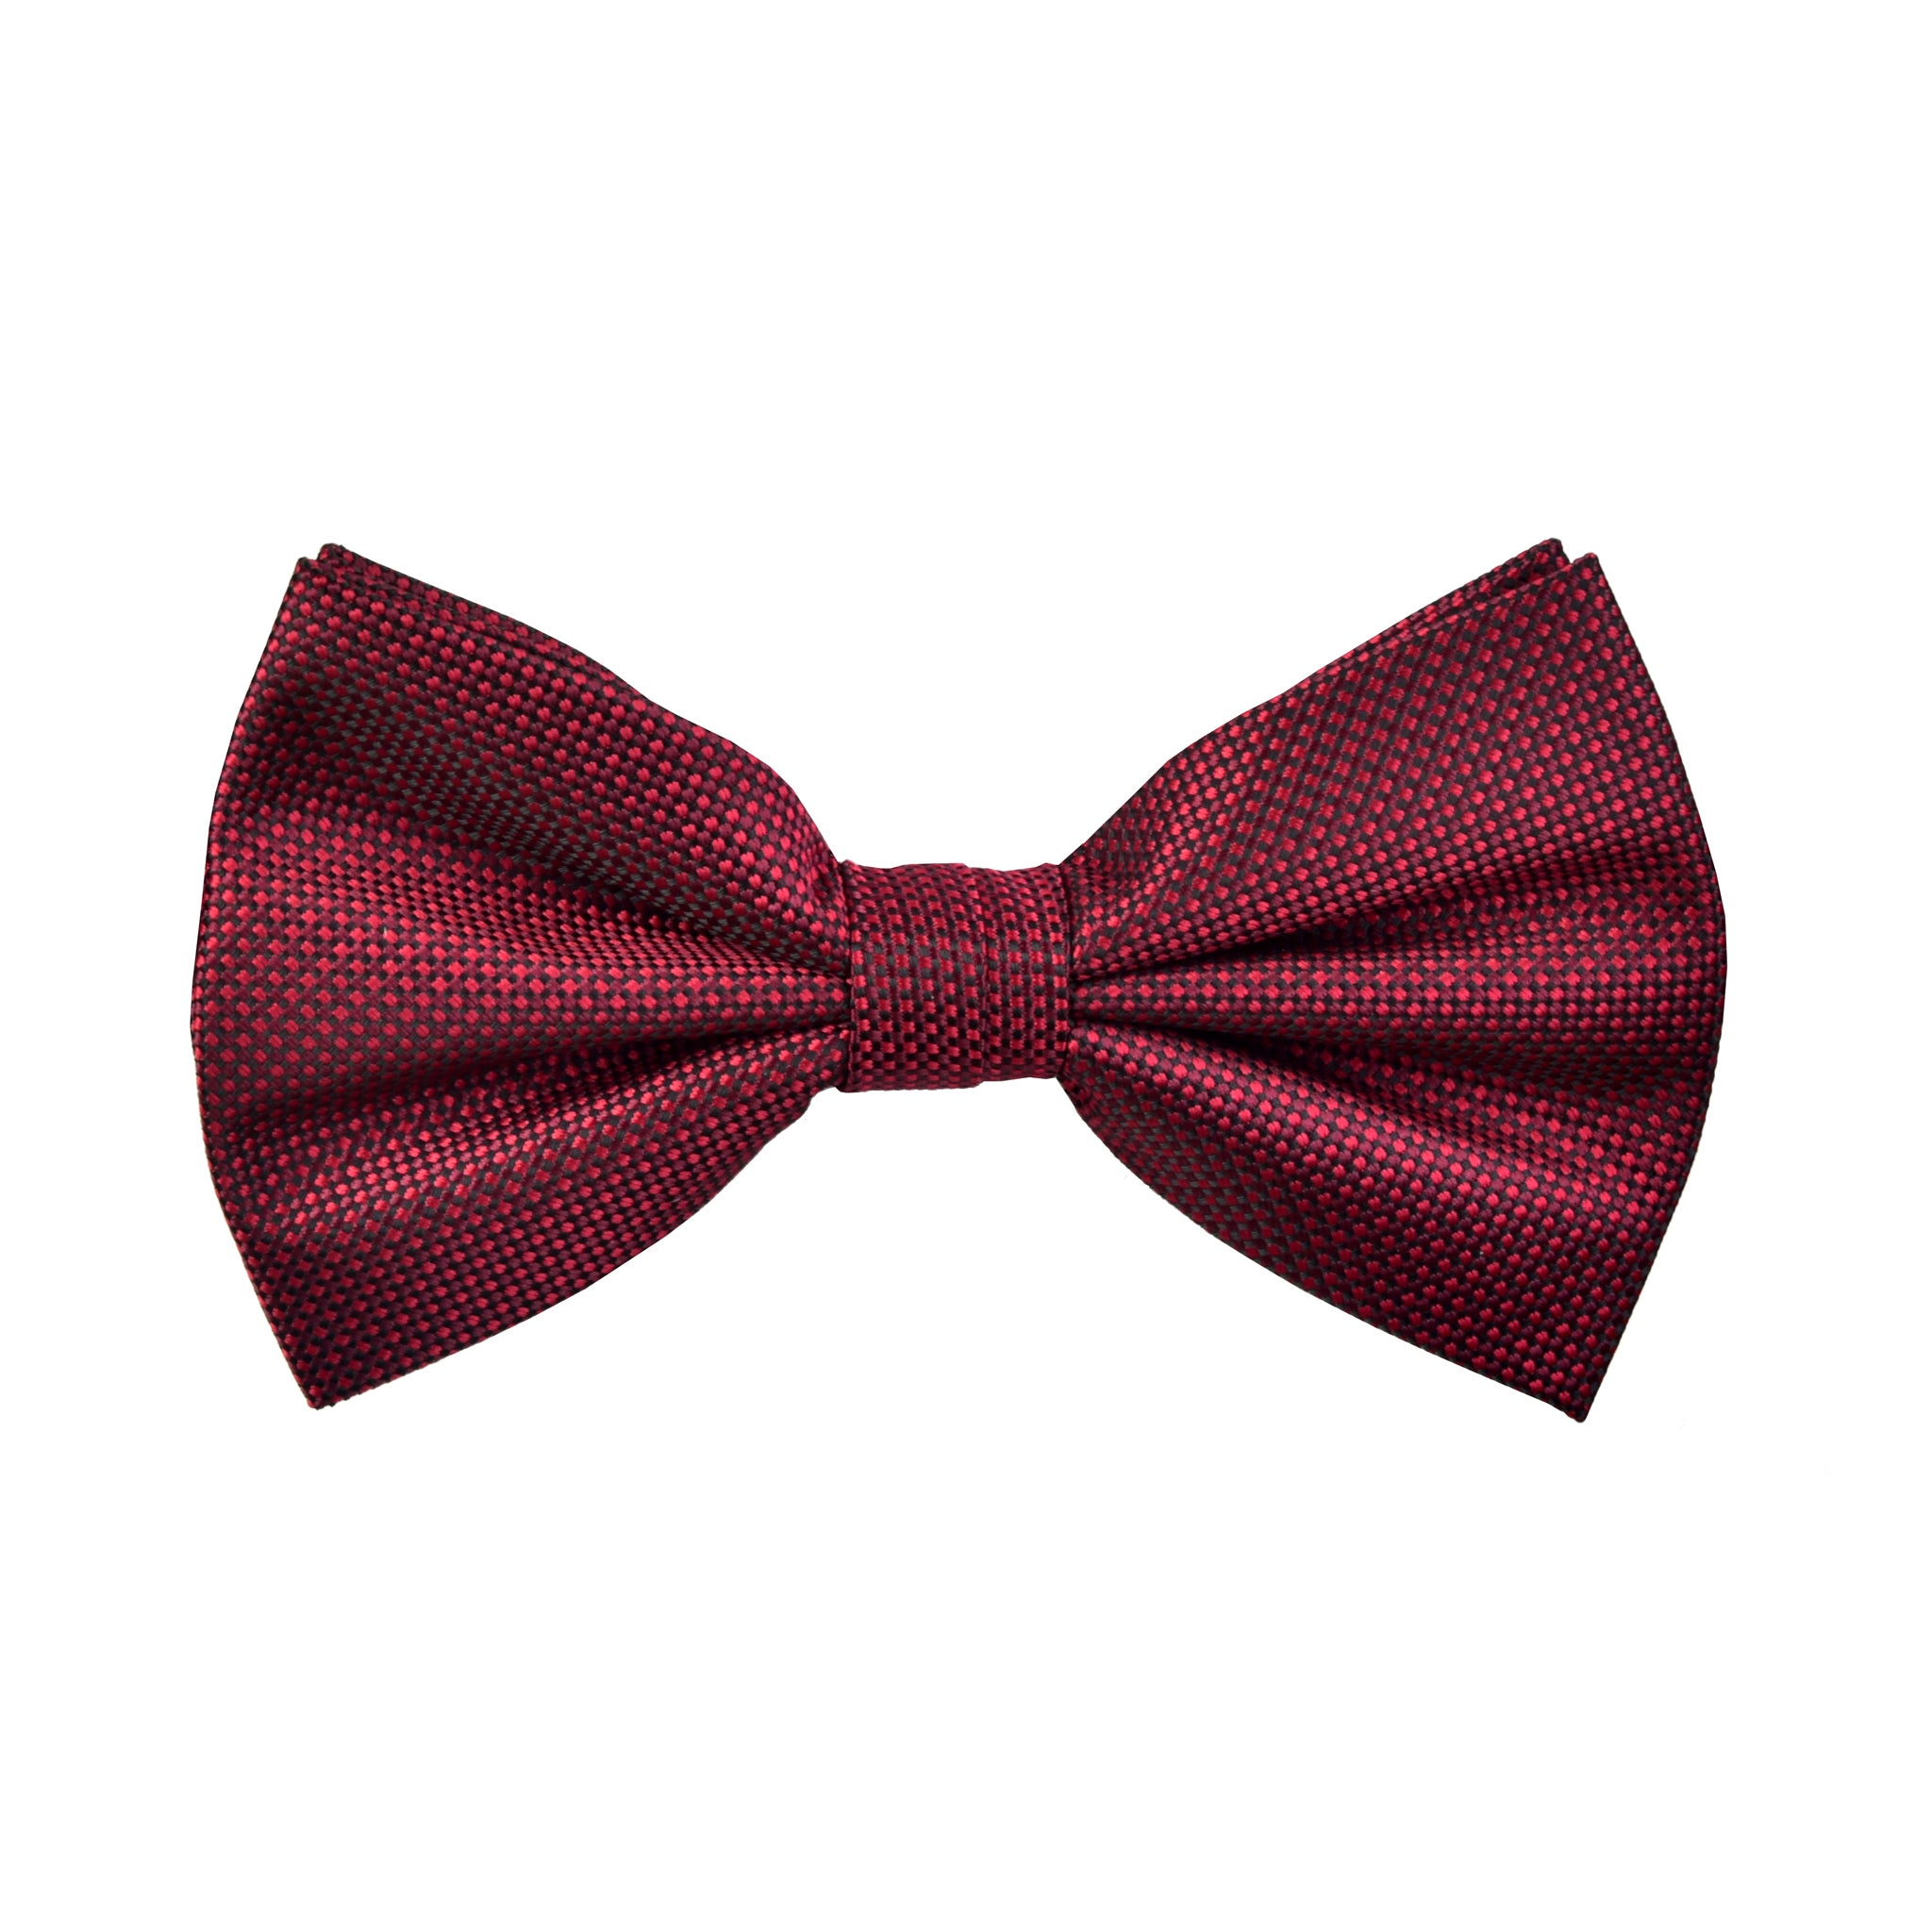 Textured Robin Bow Tie in Burgundy Red - Giorgio Mandelli® Official Site | GIORGIO MANDELLI Made in Italy